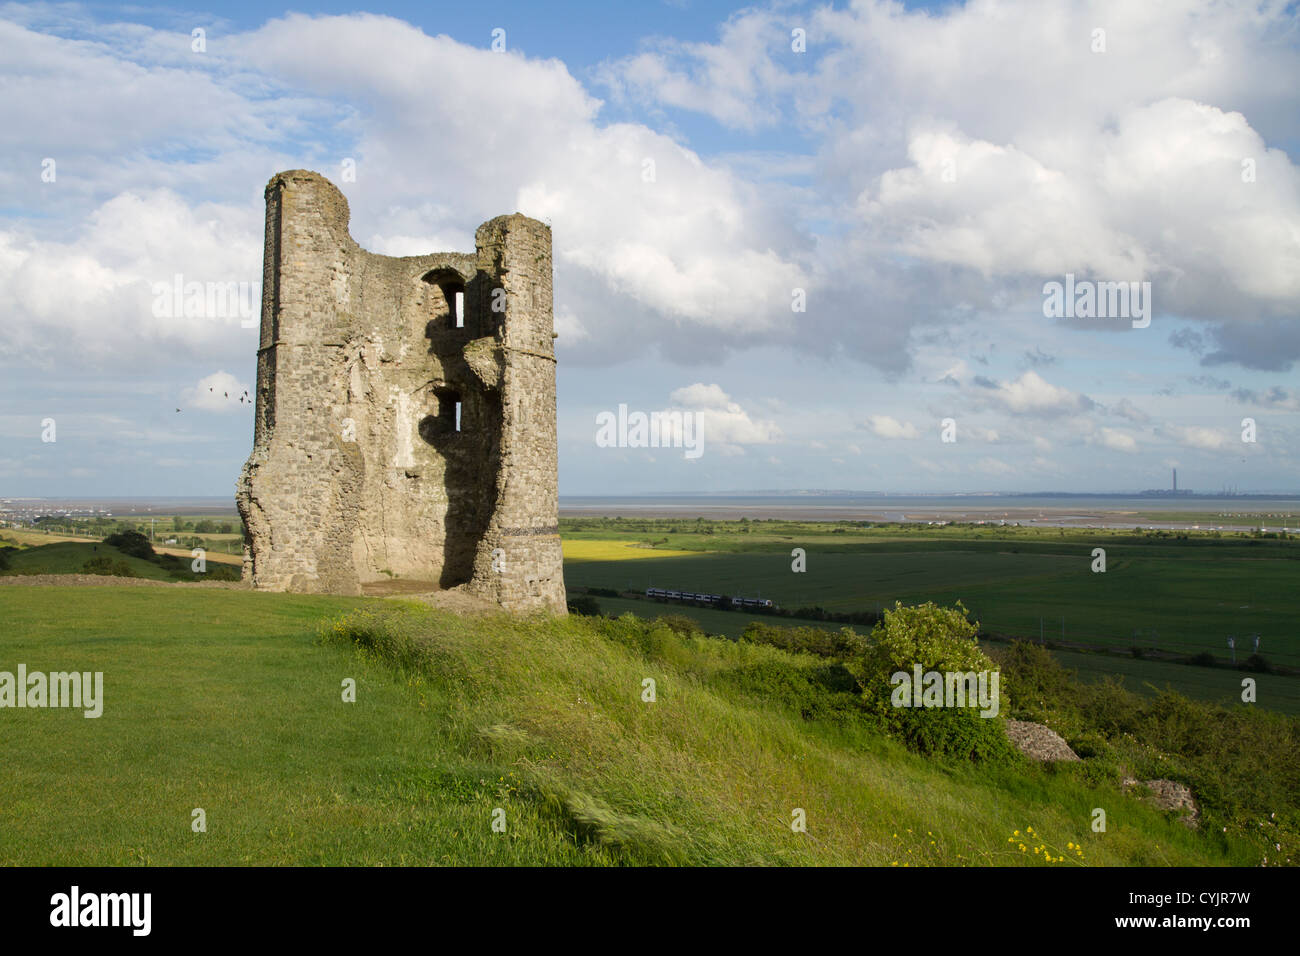 The remains of the south-east tower of Hadleigh Castle in Essex - Stock Image